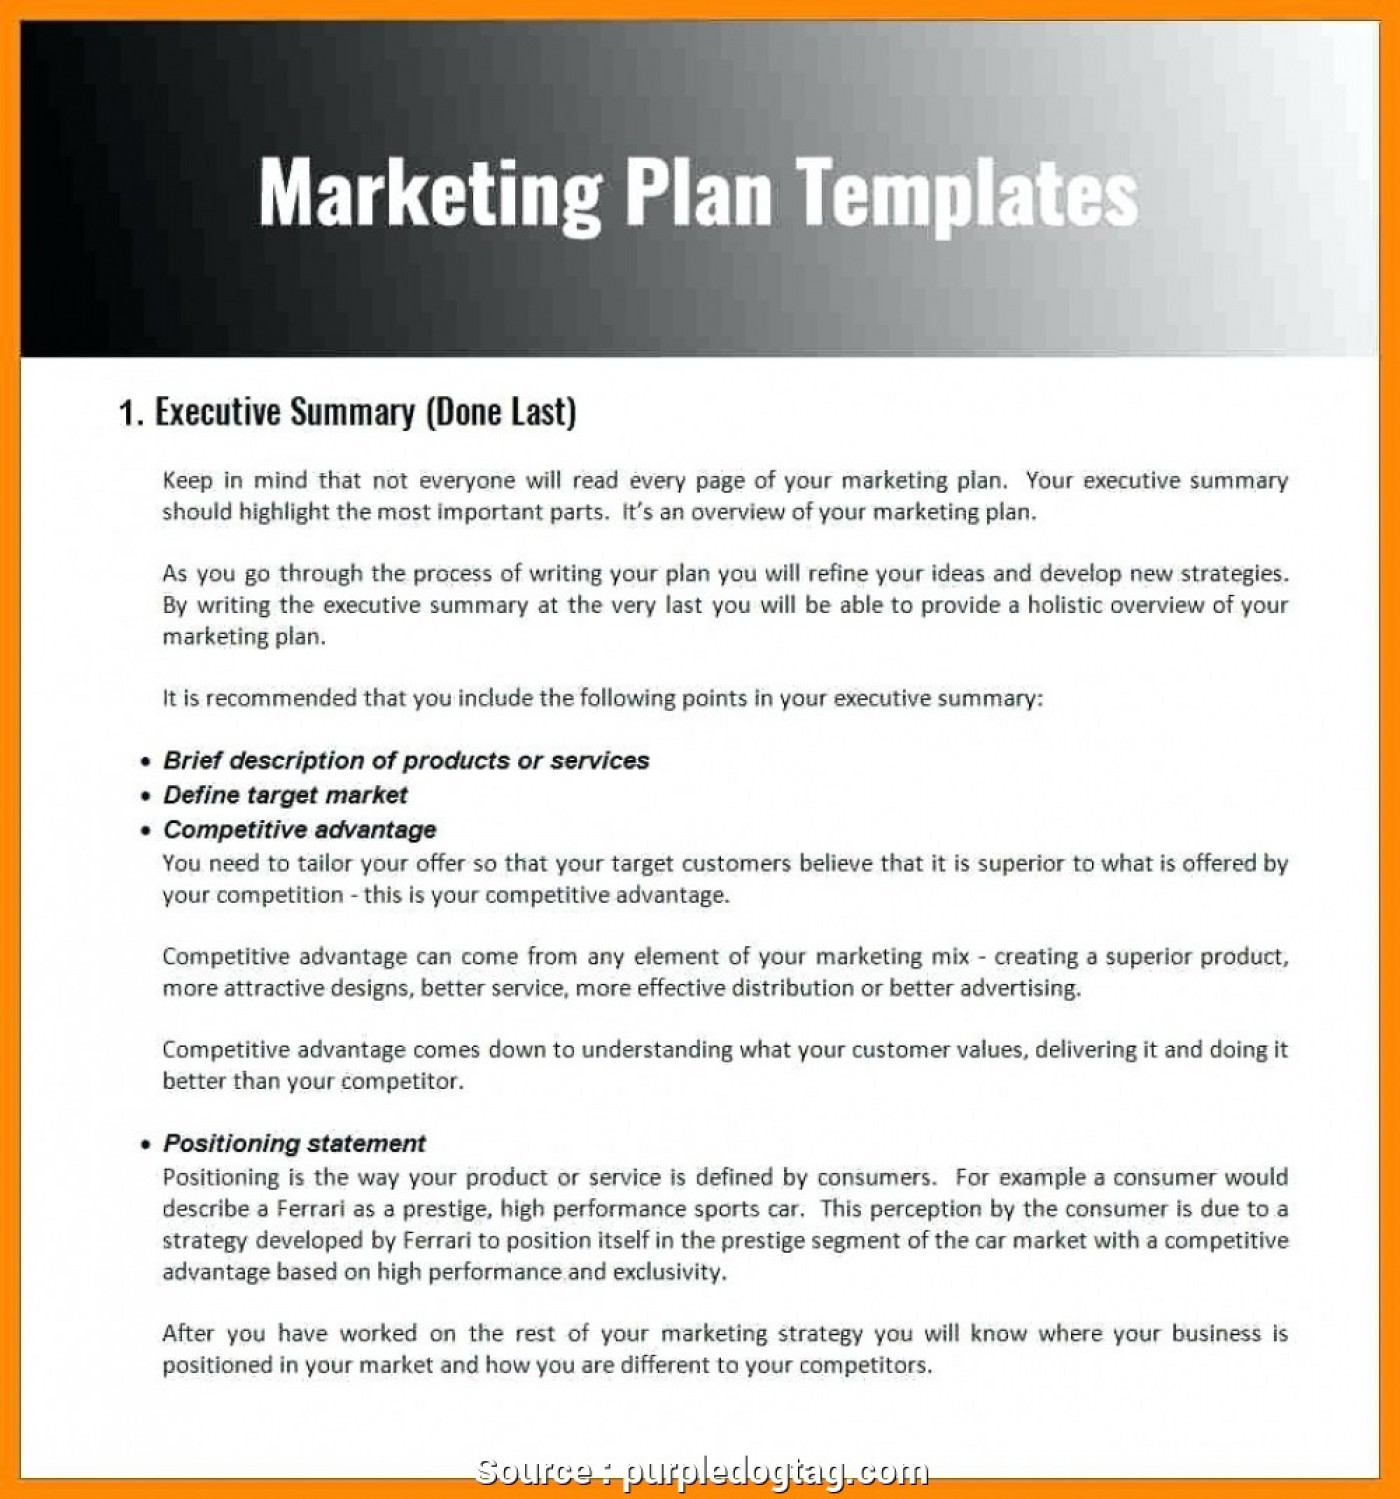 024 Research Paper 20market Plan20mplate Digital Marketing Pdf Study Music Presentation Ppt Product20 Powerpointmat Unique Powerpoint Format For Sample Templates 1400